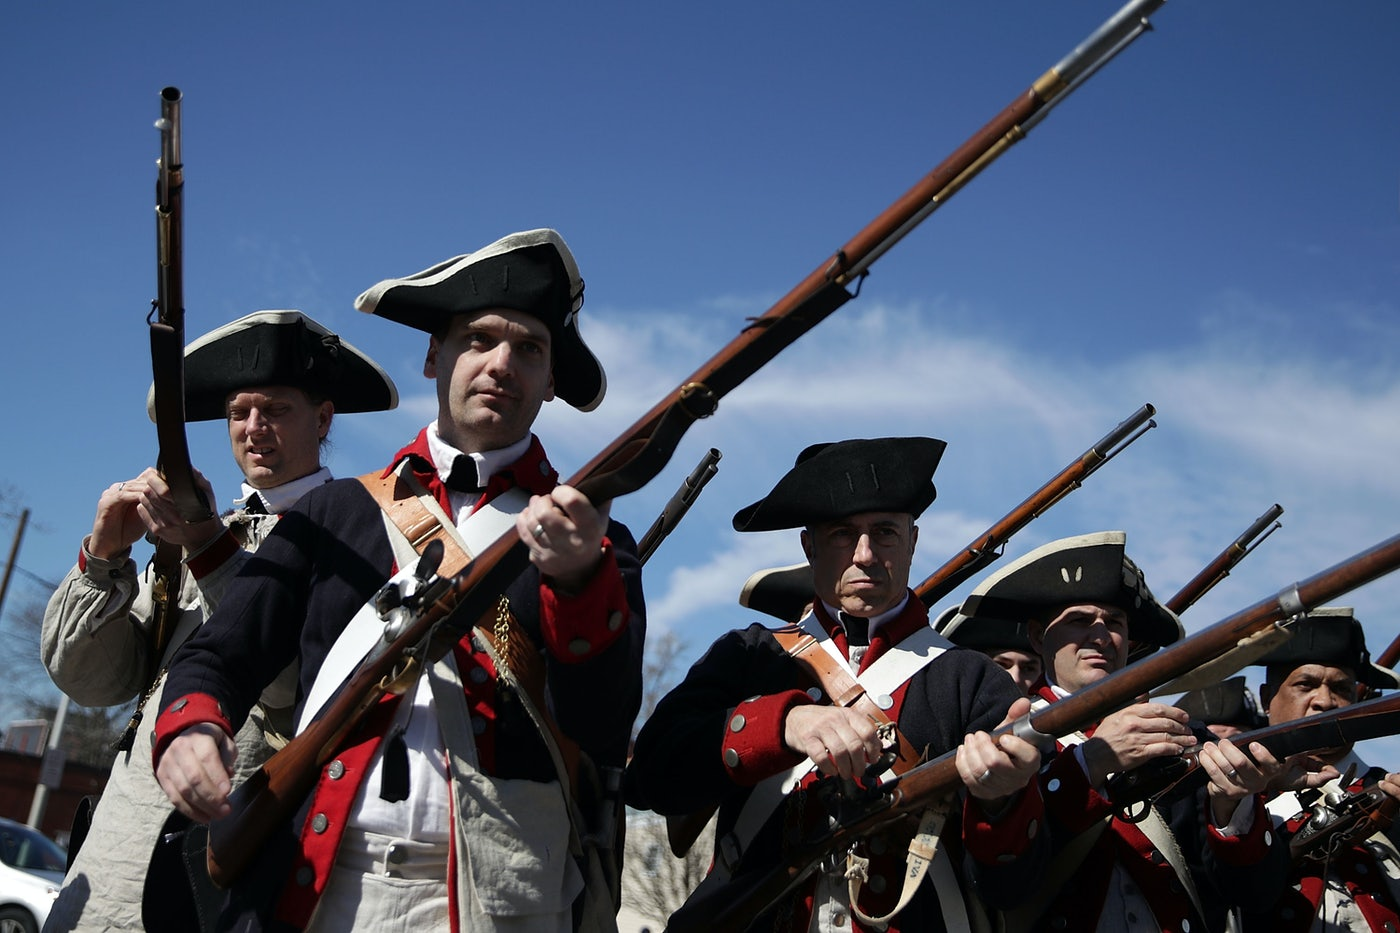 Members of the First Virginia Regiment, a Revolutionary War living history reenactment group, participate in the annual George Washington Birthday Parade in Virginia.